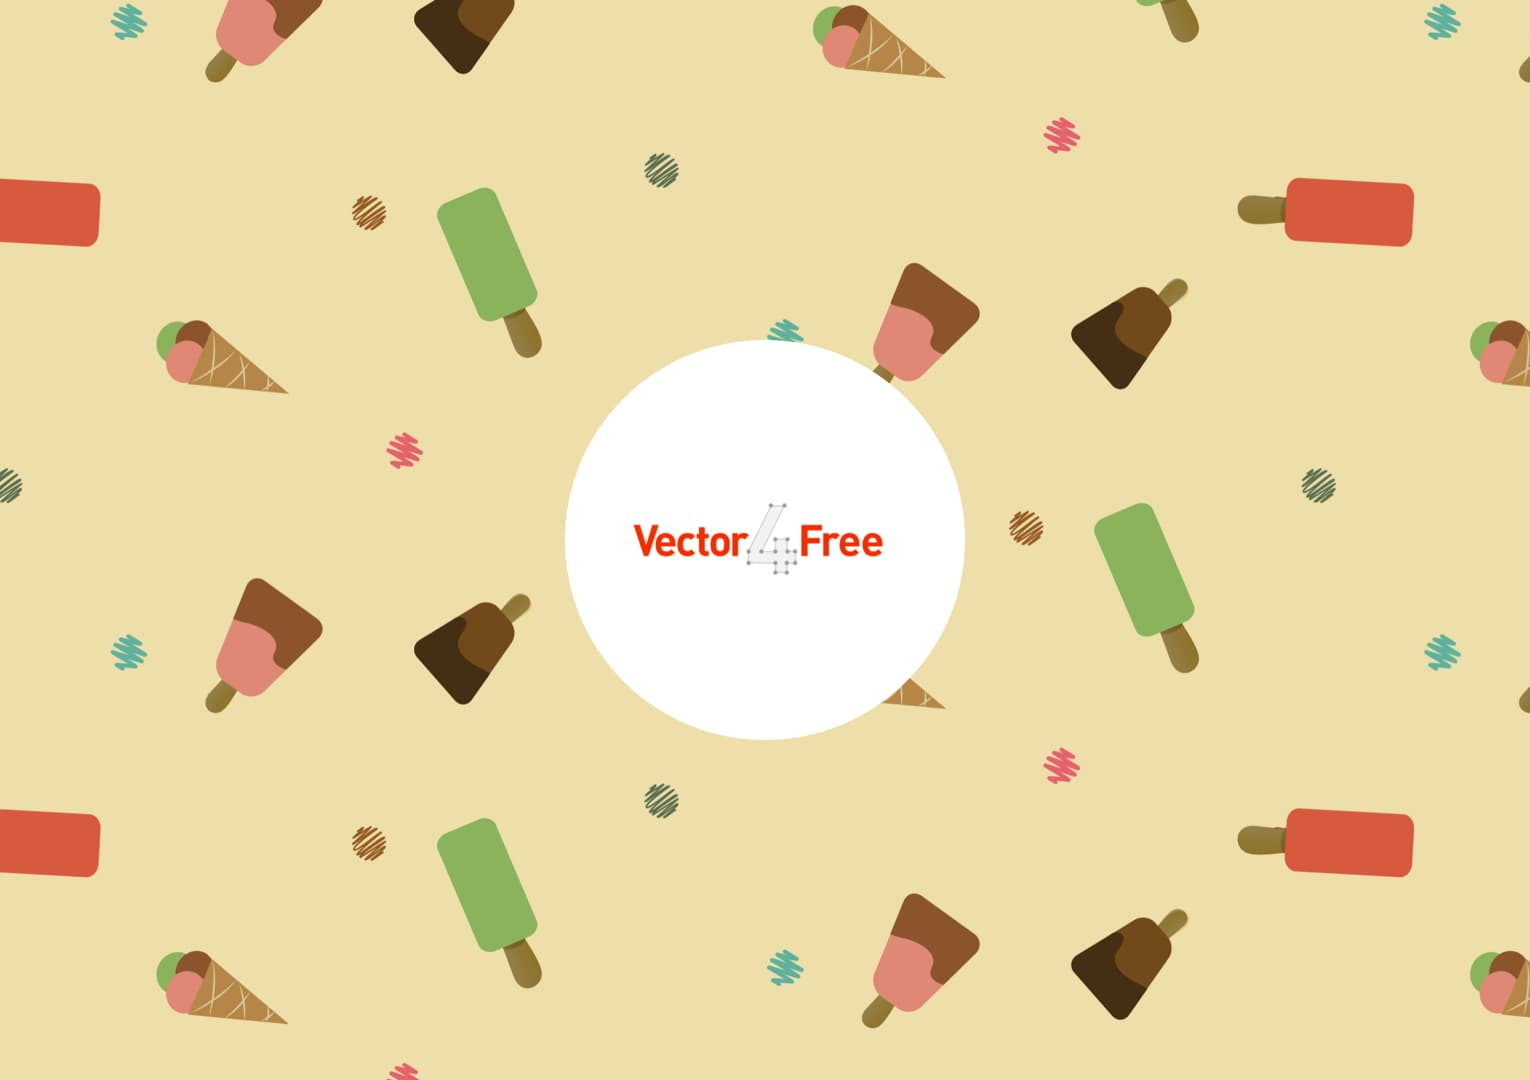 Vector4Free by